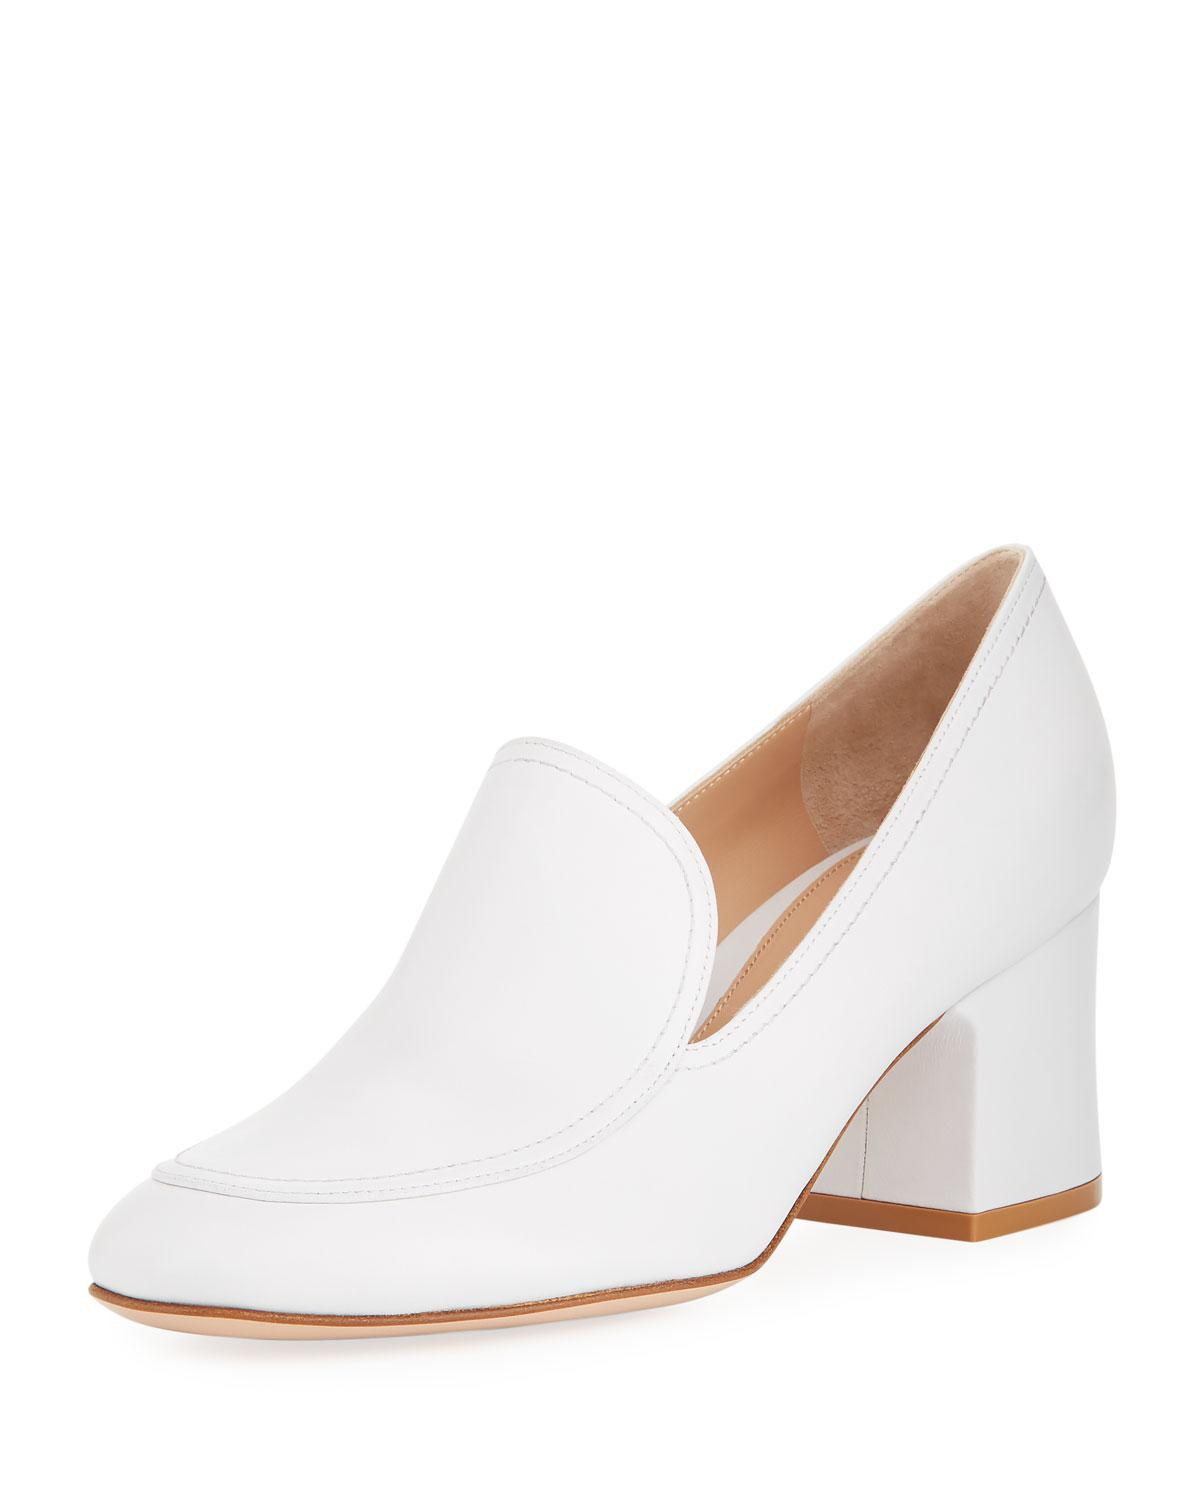 ea15a2e495f Lyst - Gianvito Rossi Marcel 60mm Leather Block-heel Loafer Pumps in ...